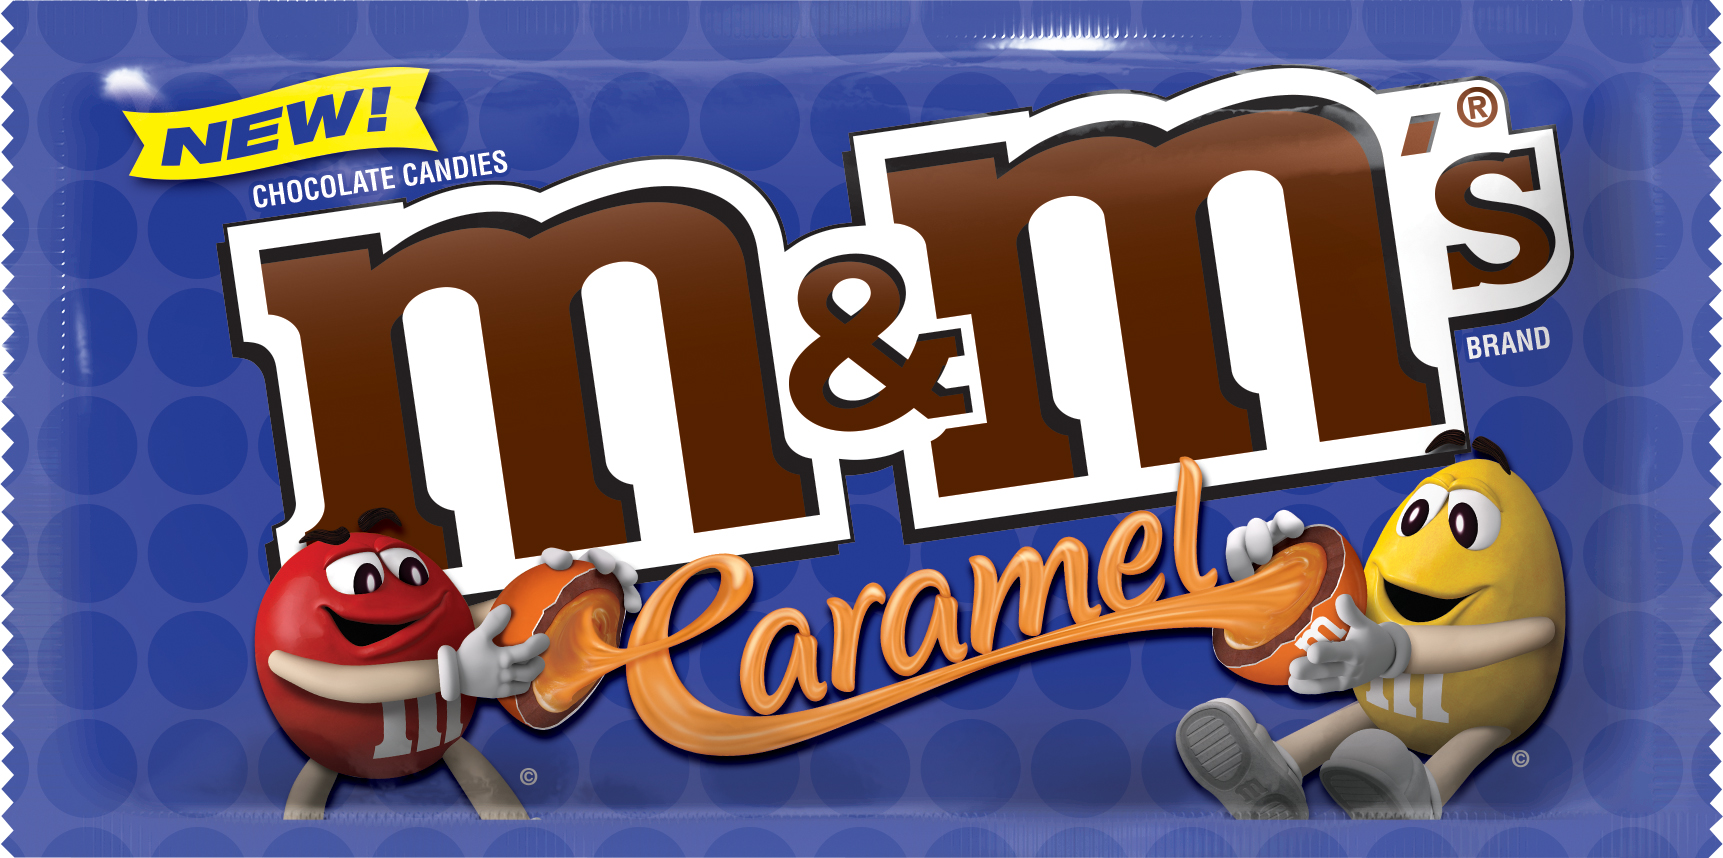 M&Ms new caramel flavor